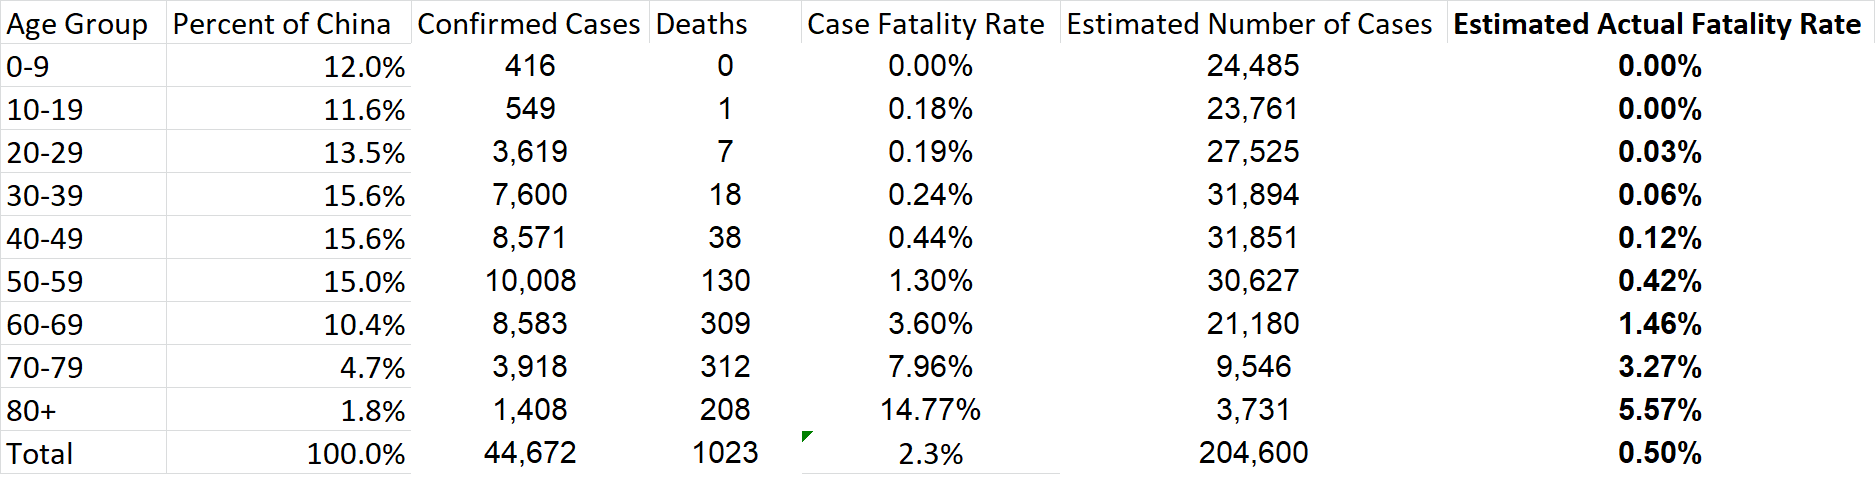 Coronavirus Fatality Rate By Age Group